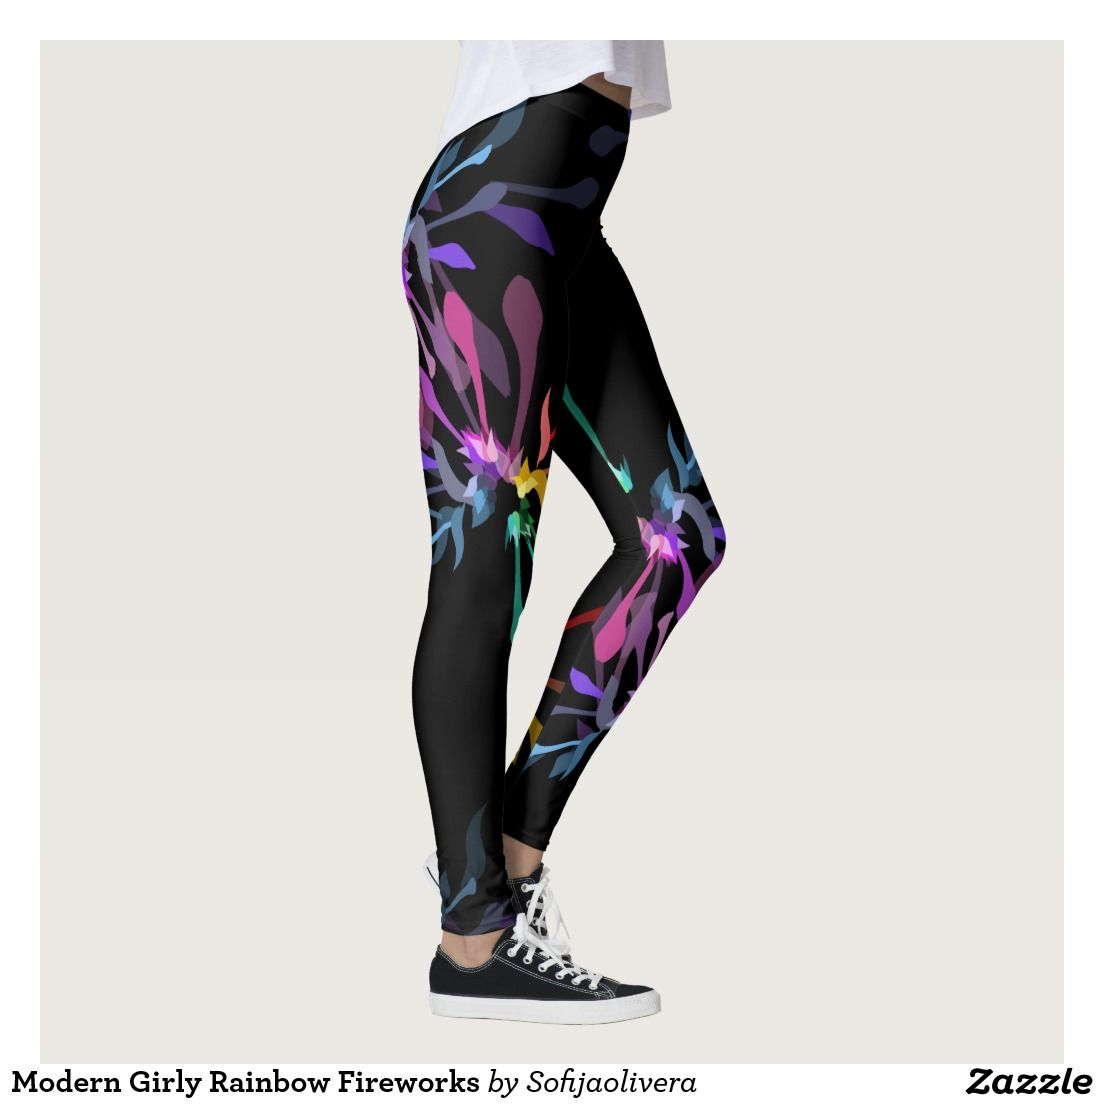 33507c5764e12 Edgy girly leggings print design. Vivid abstract pattern in colors of the  rainbow inspired by trance subculture, based on the stylized tubular flowers .